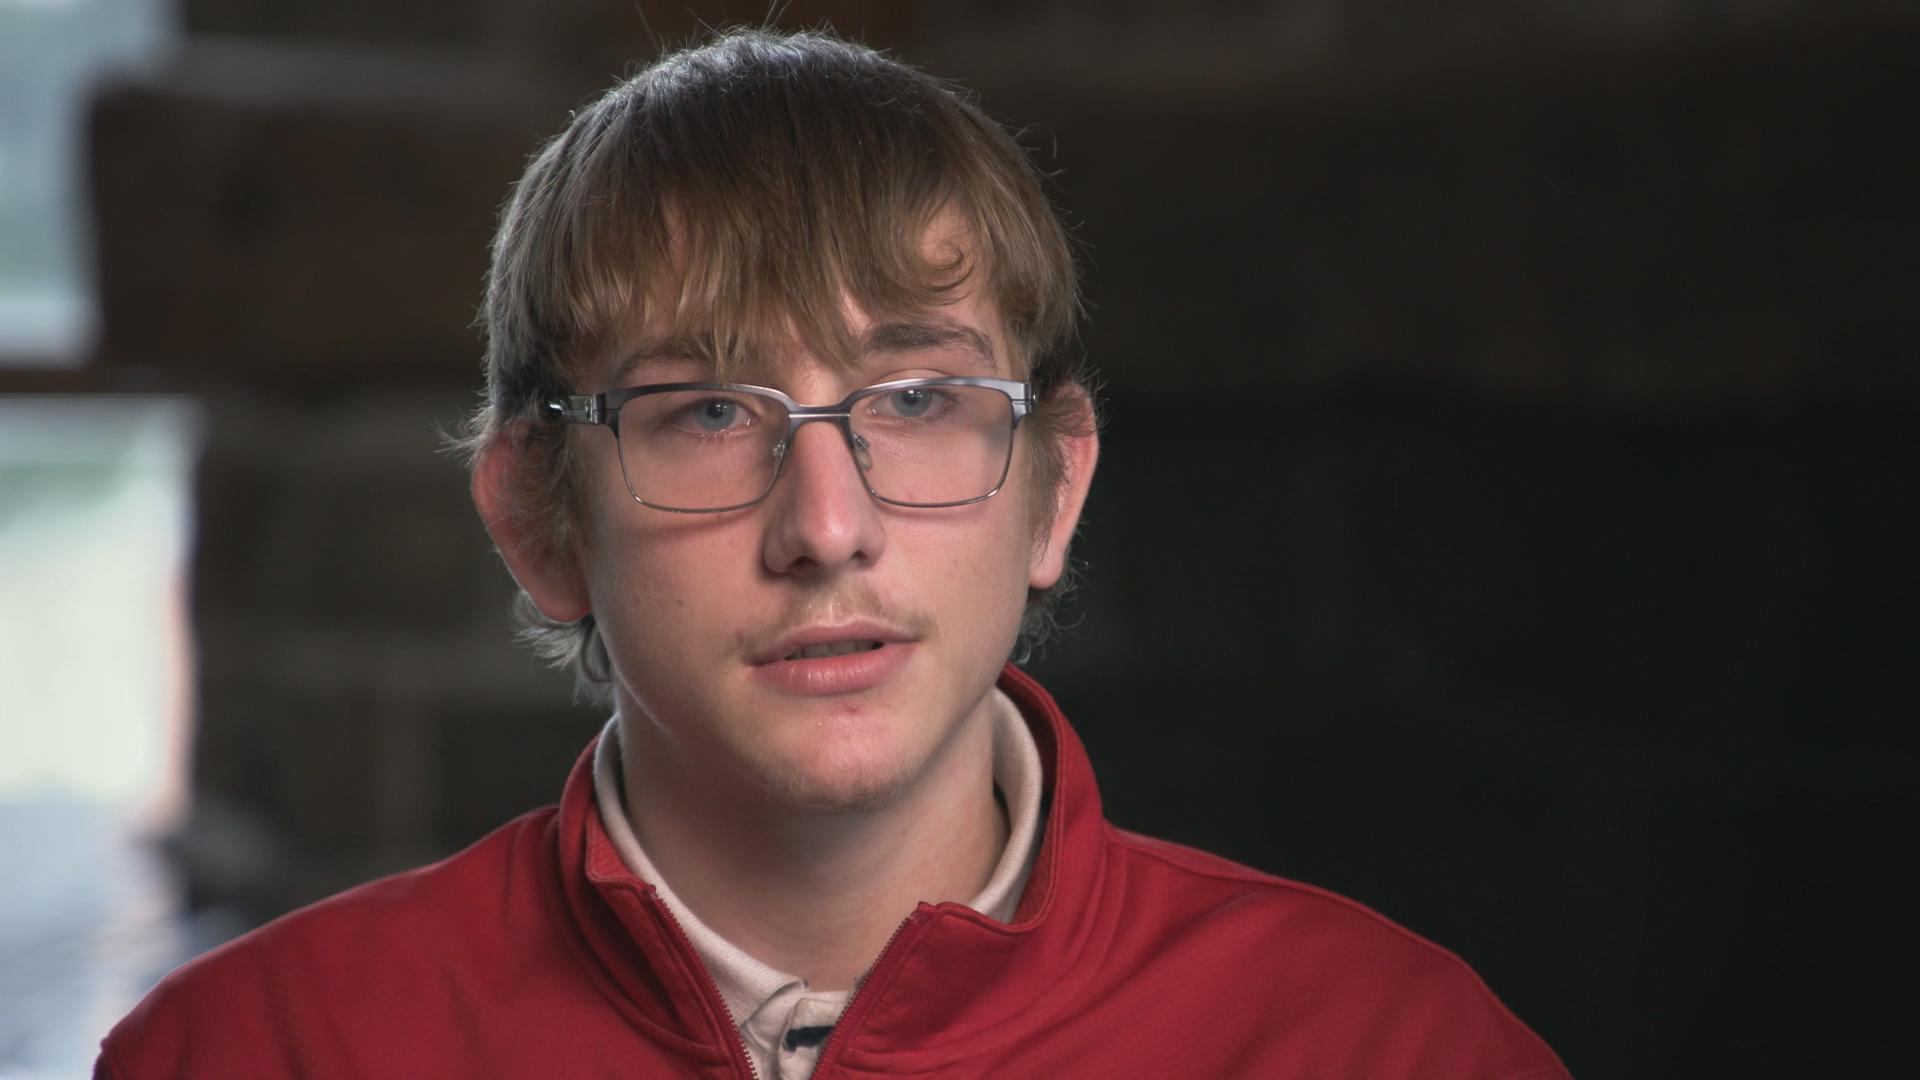 Ethan Moore says it was hard to understand what was going on when police raided his home because he and his brothers were so young. (Andy Hincenbergs/CBC)